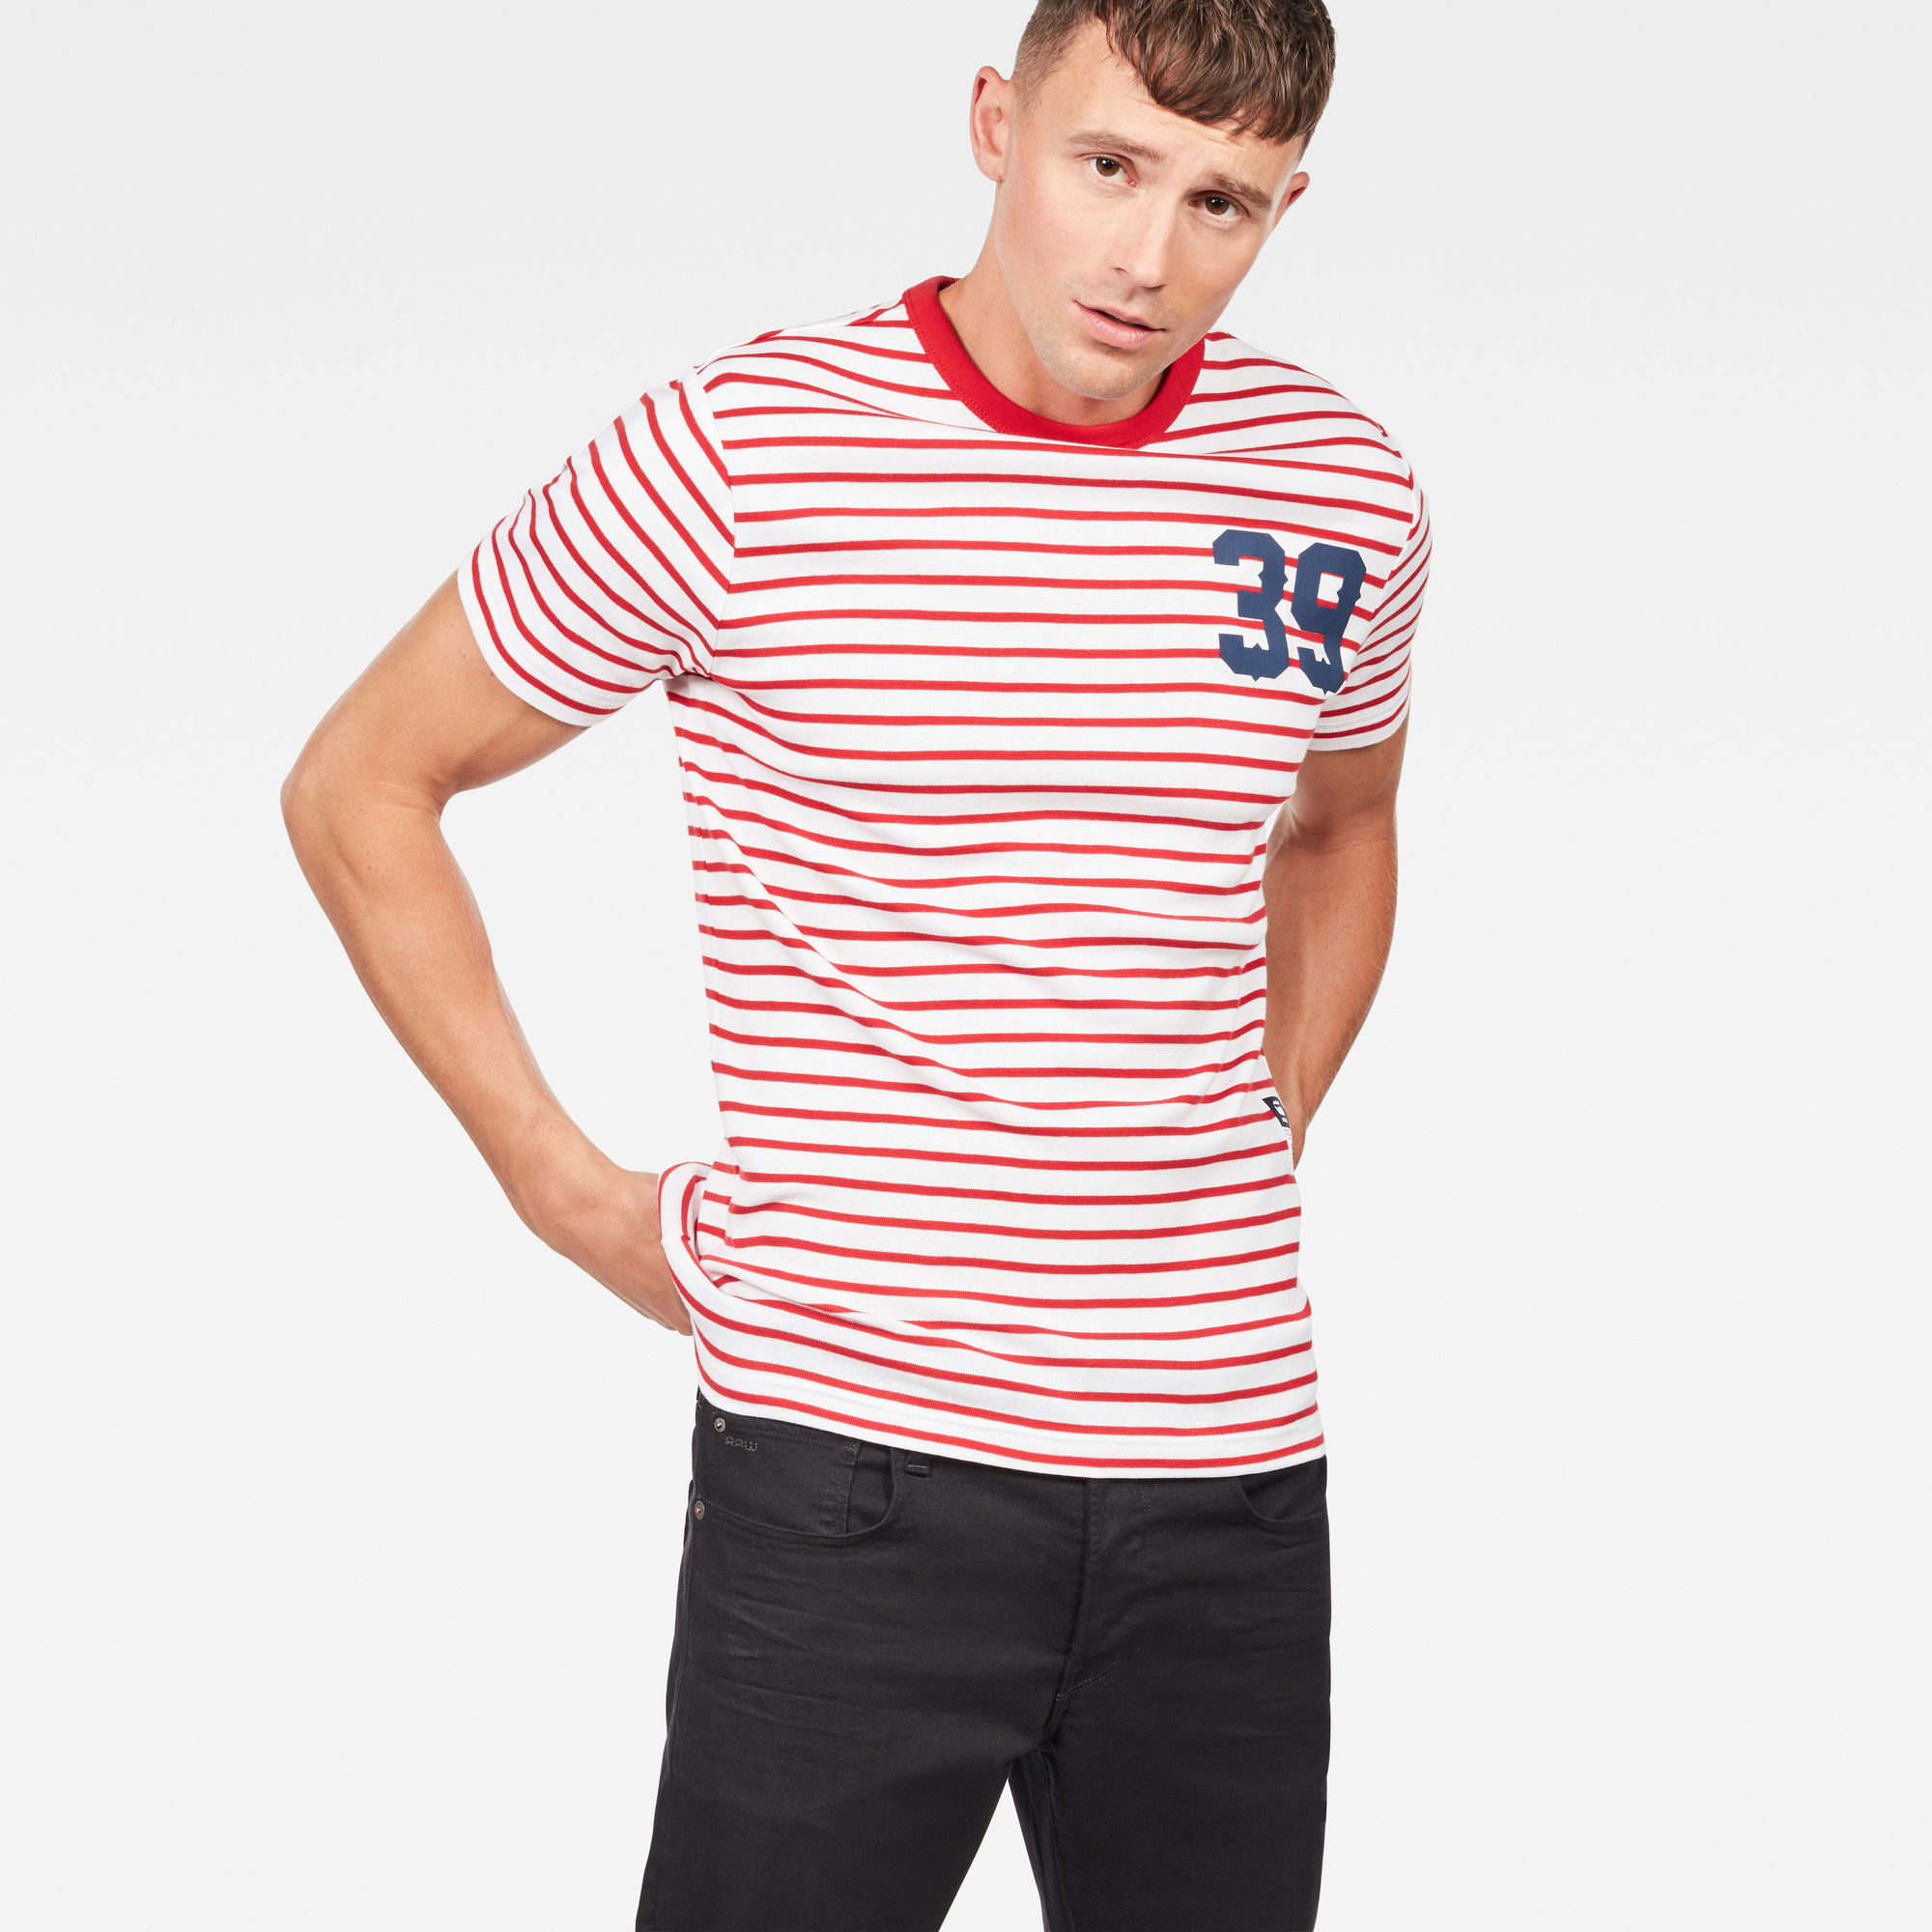 Image of 06 Slim T-Shirt